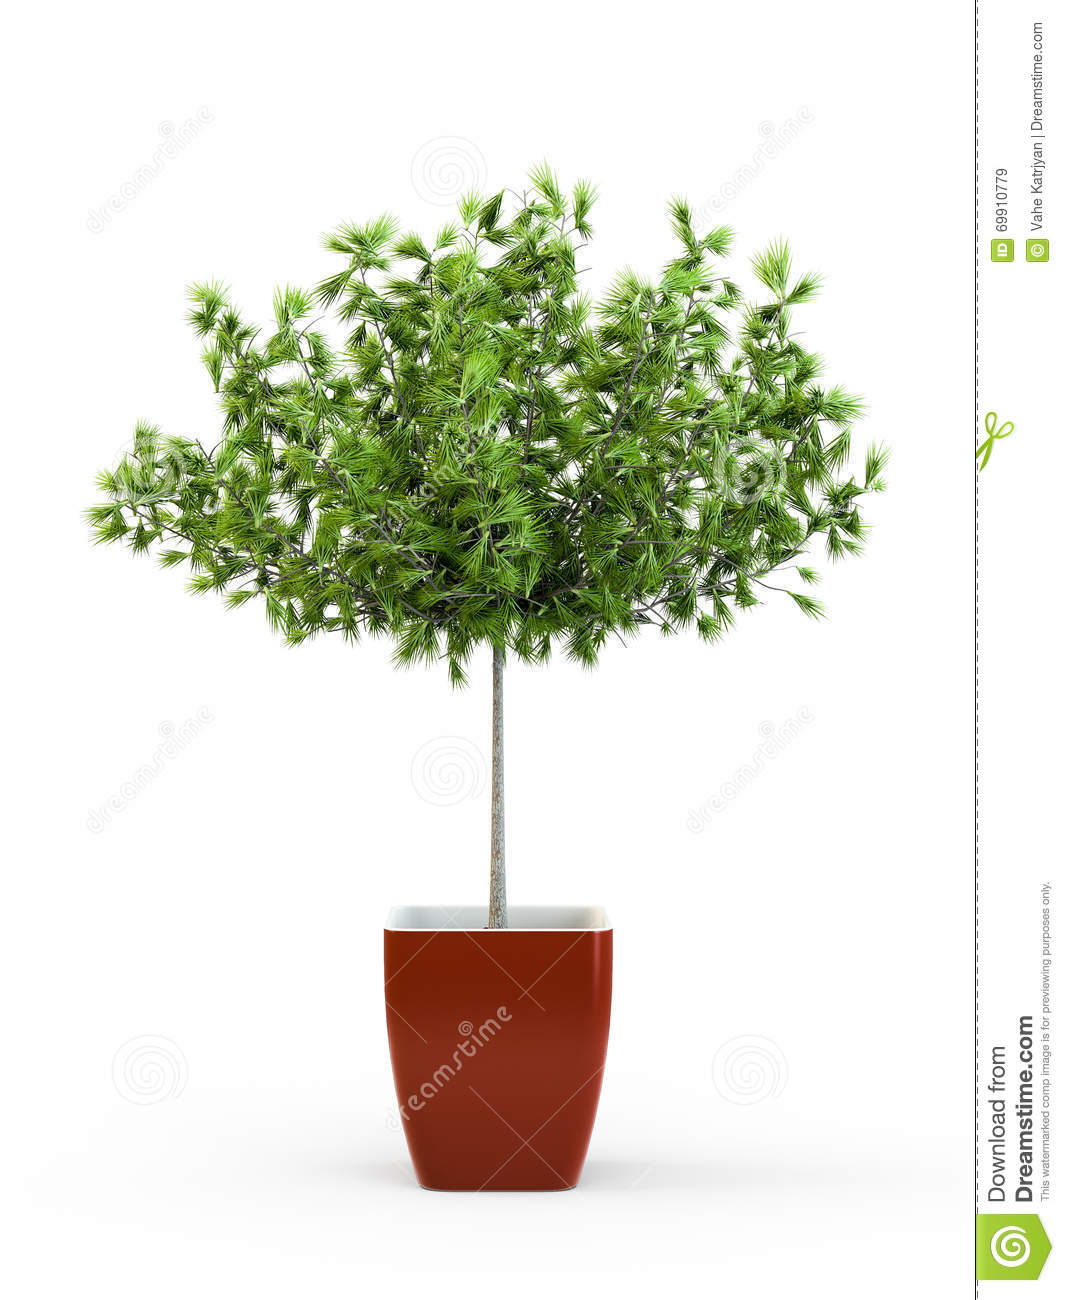 Usine mise en pot de grand arbre vert illustration stock - Arbre en pot terrasse ...